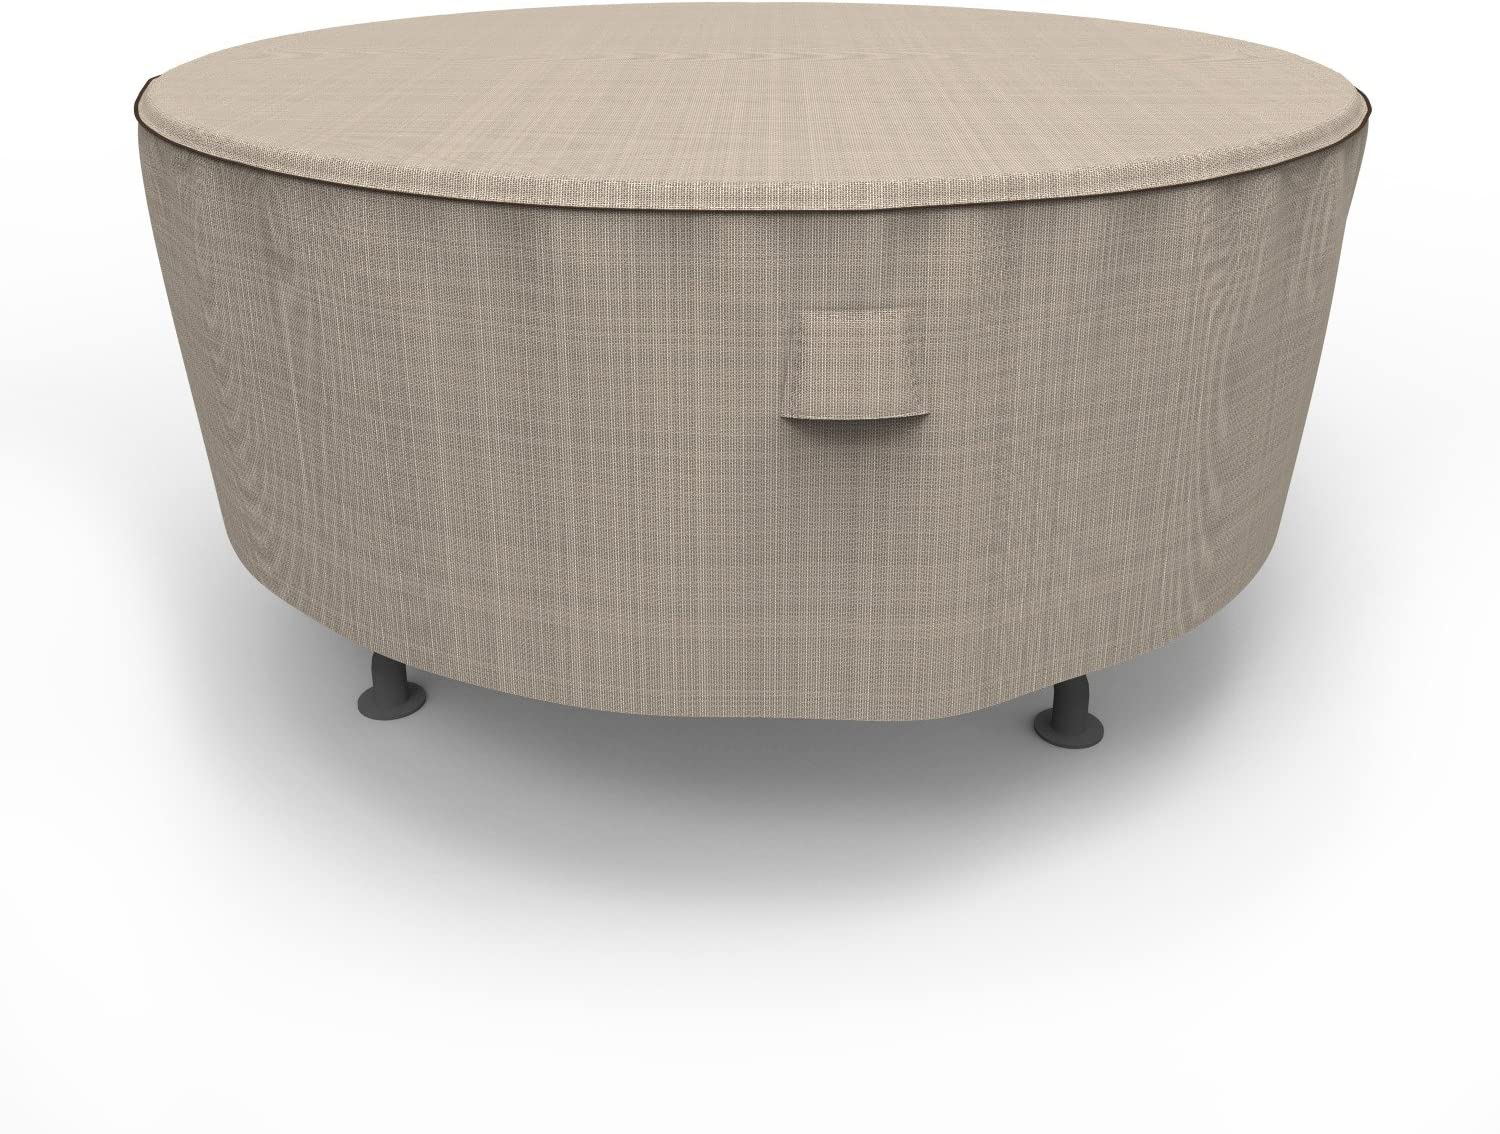 Budge P5A23PM1 English Garden Round Patio Table Cover Heavy Duty and Waterproof, Large, Two-Tone Tan : Patio, Lawn & Garden